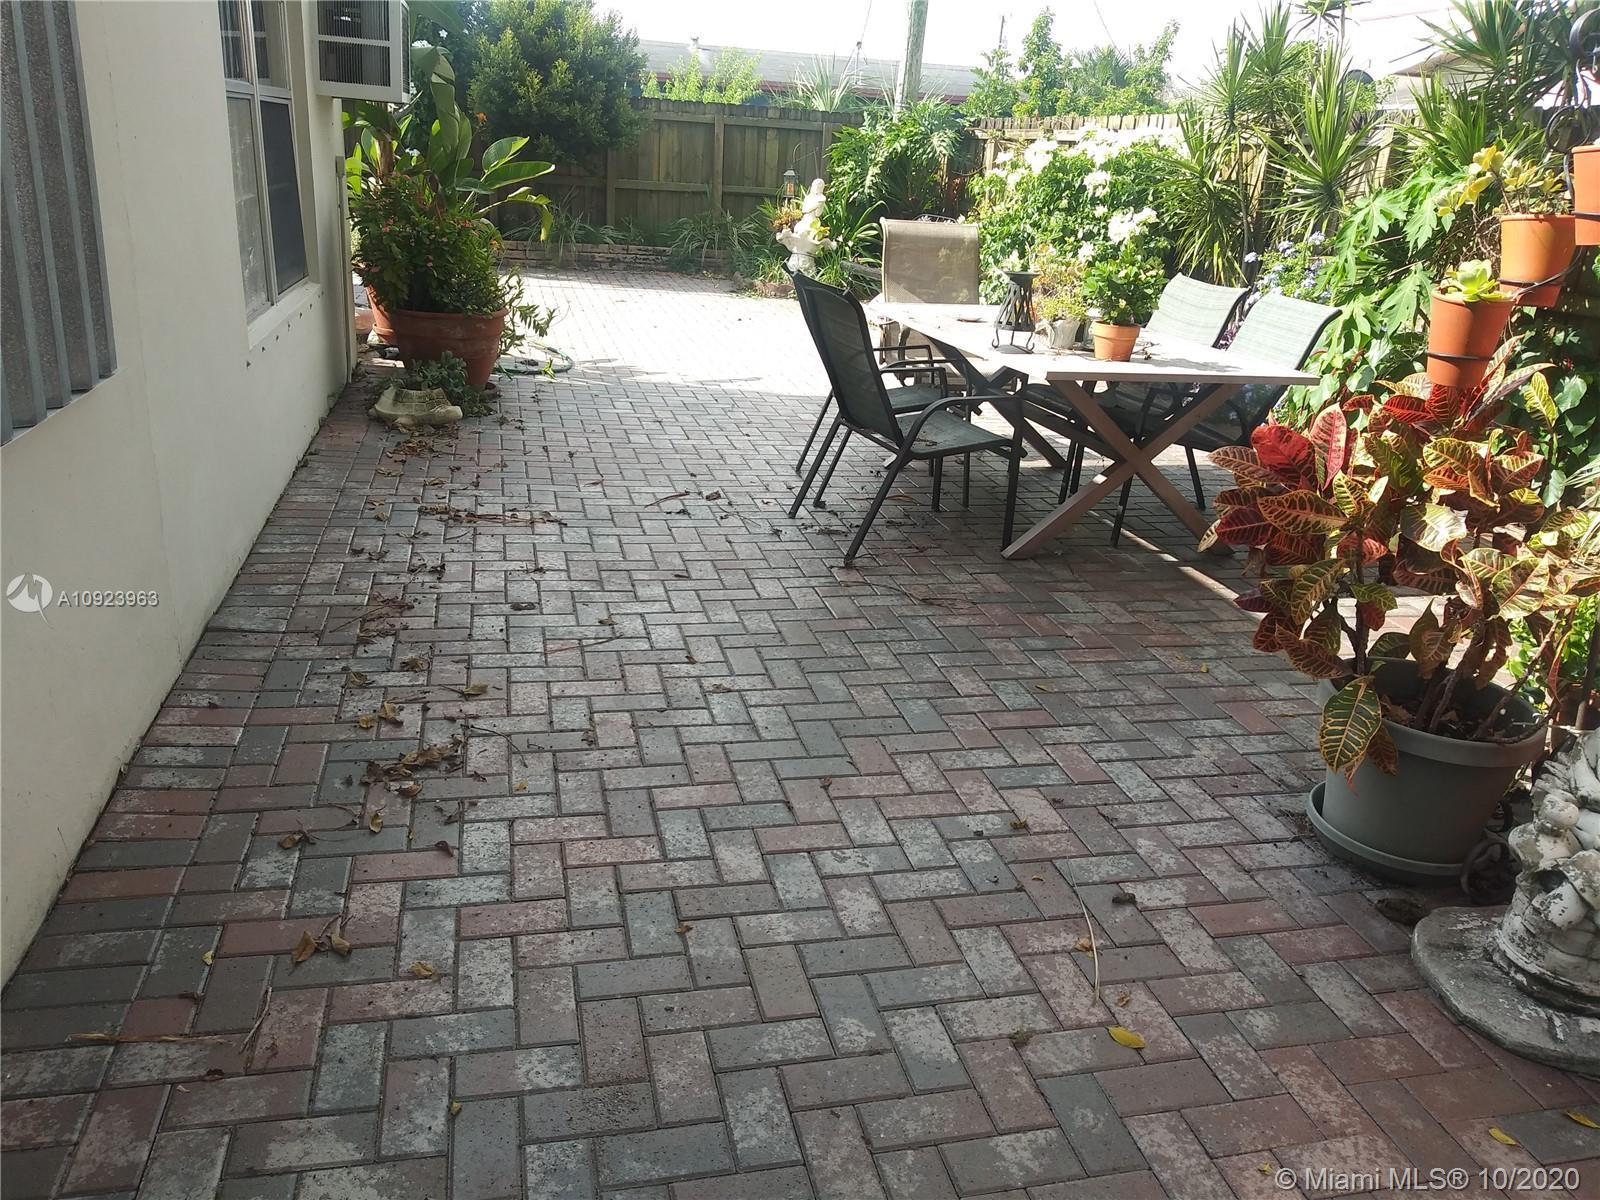 FANTASTIC 4 BEDROOMS 3 BATHROOMS HOME WITH TWO MASTERS, LOCATED IN A DESIRABLE AREA IN FORT LAUDERDA